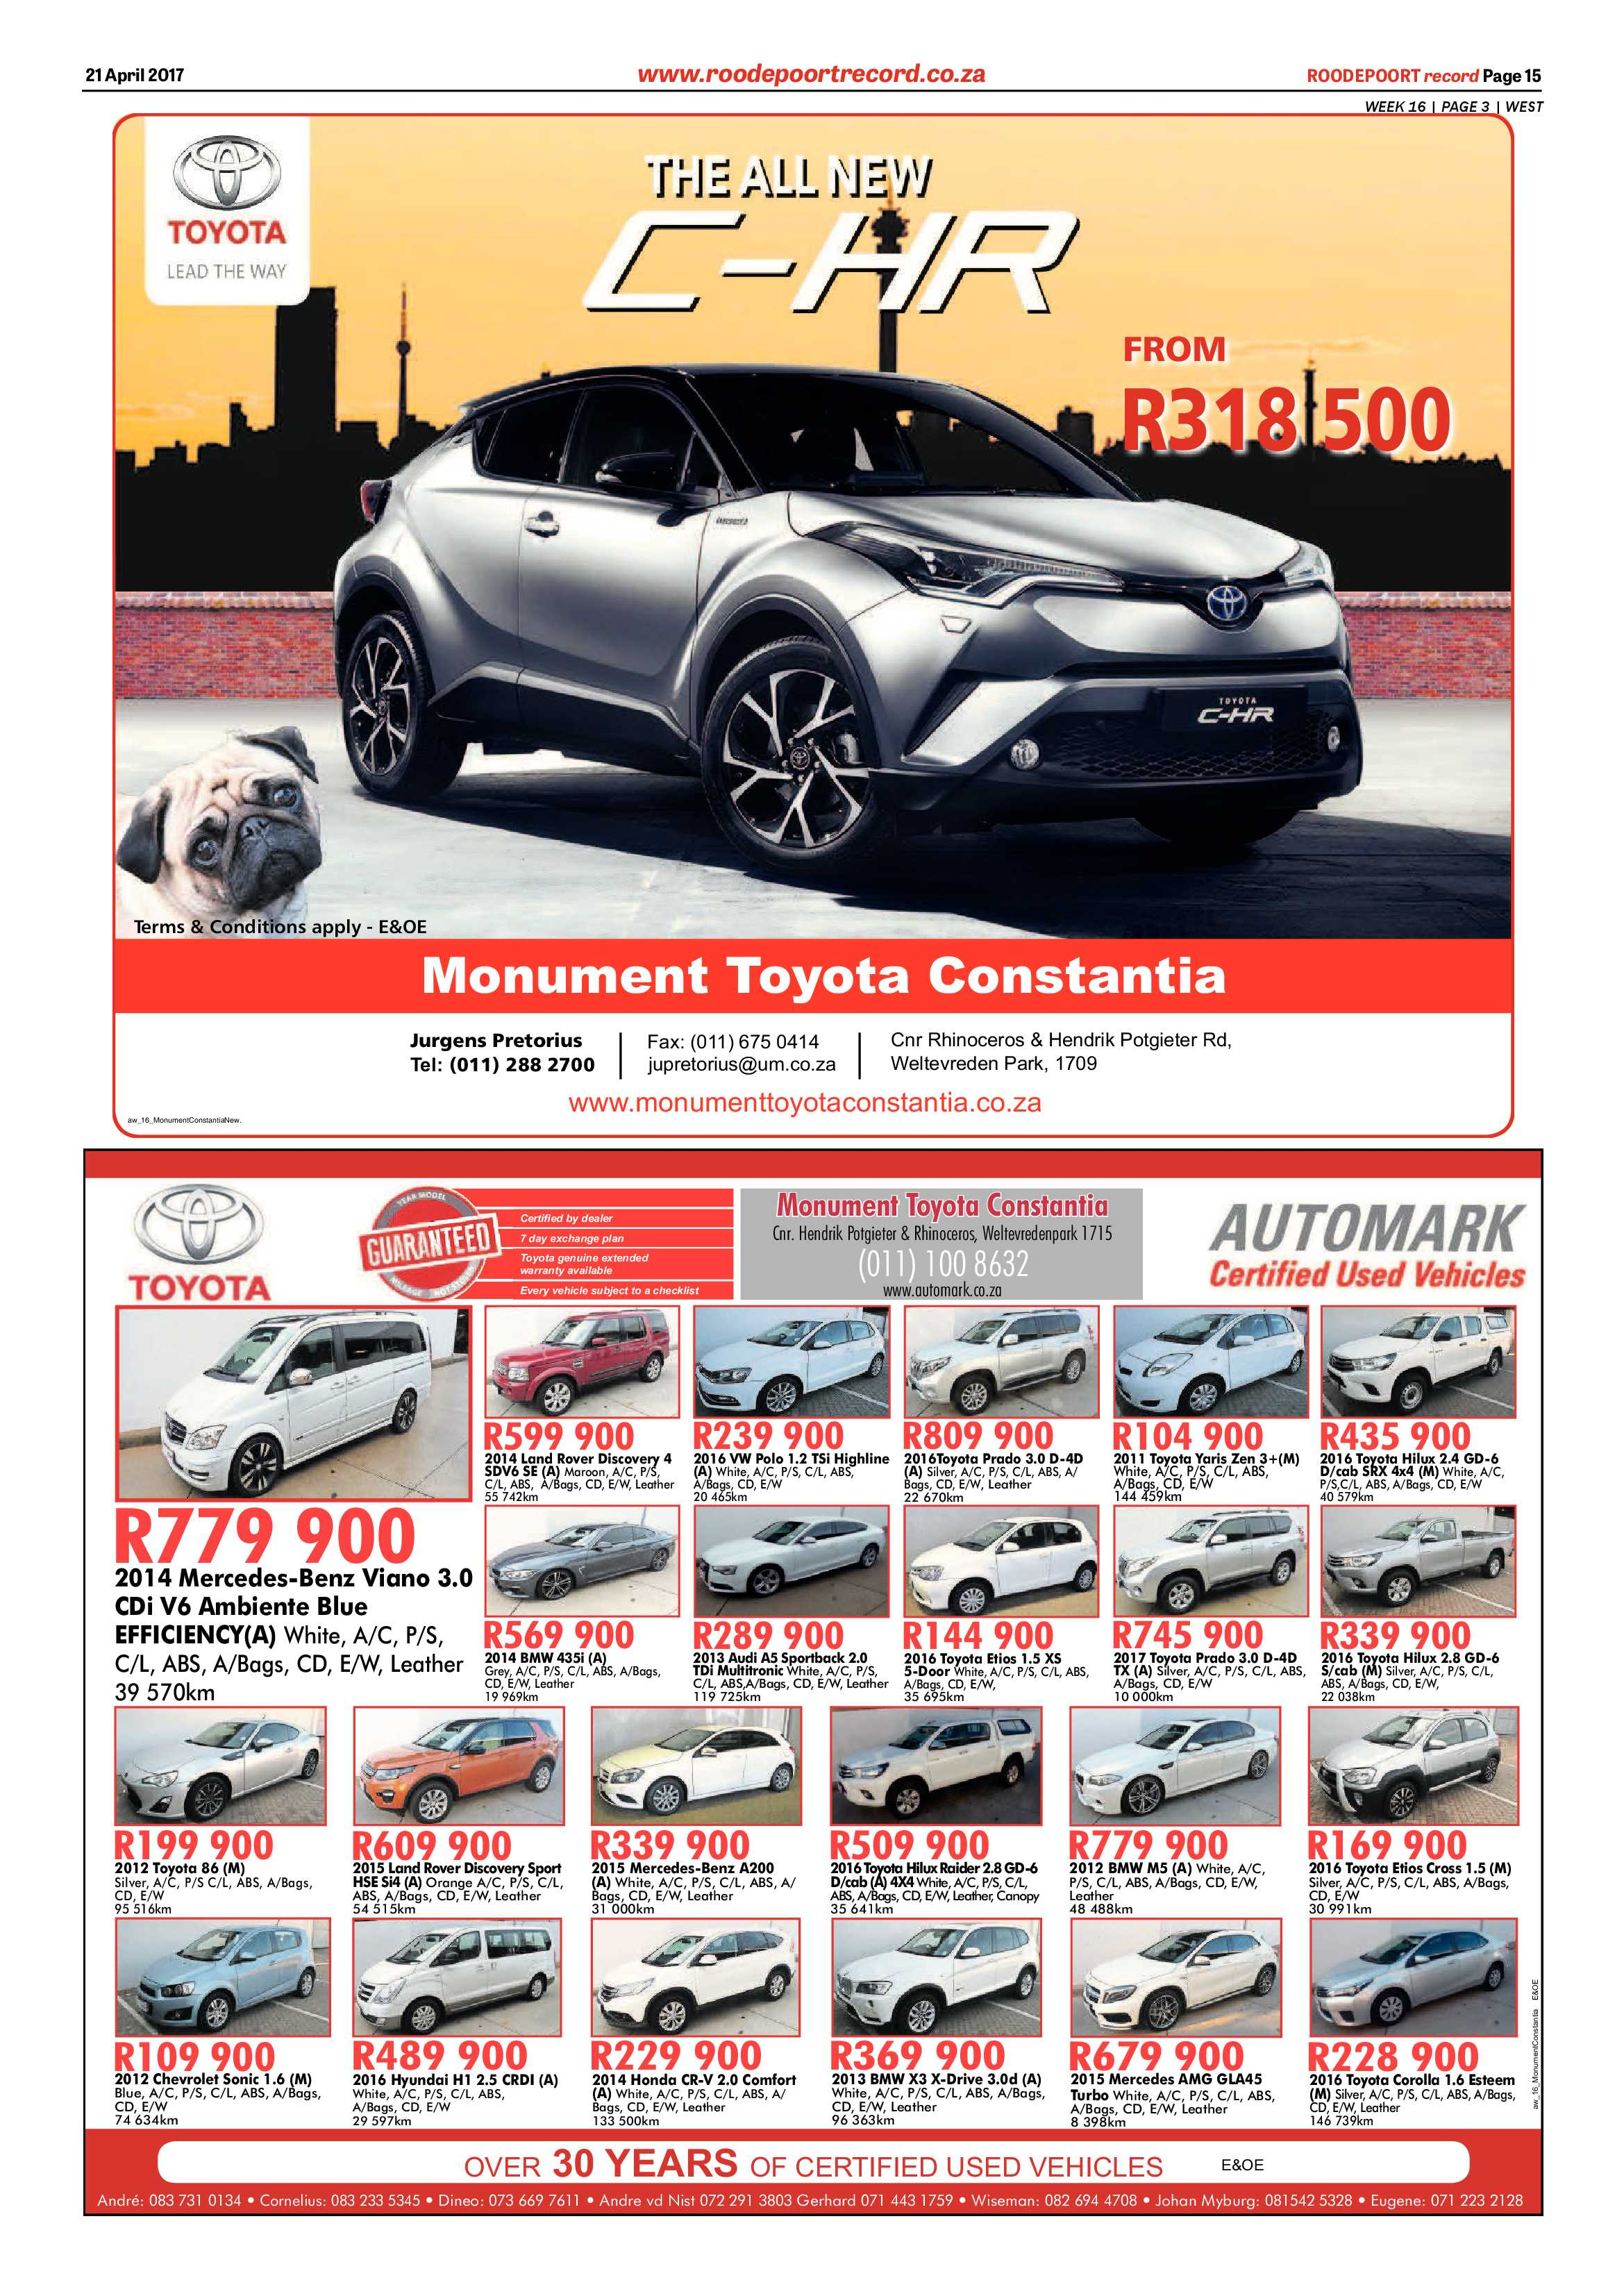 roodepoort-record-21-april-2017-epapers-page-15